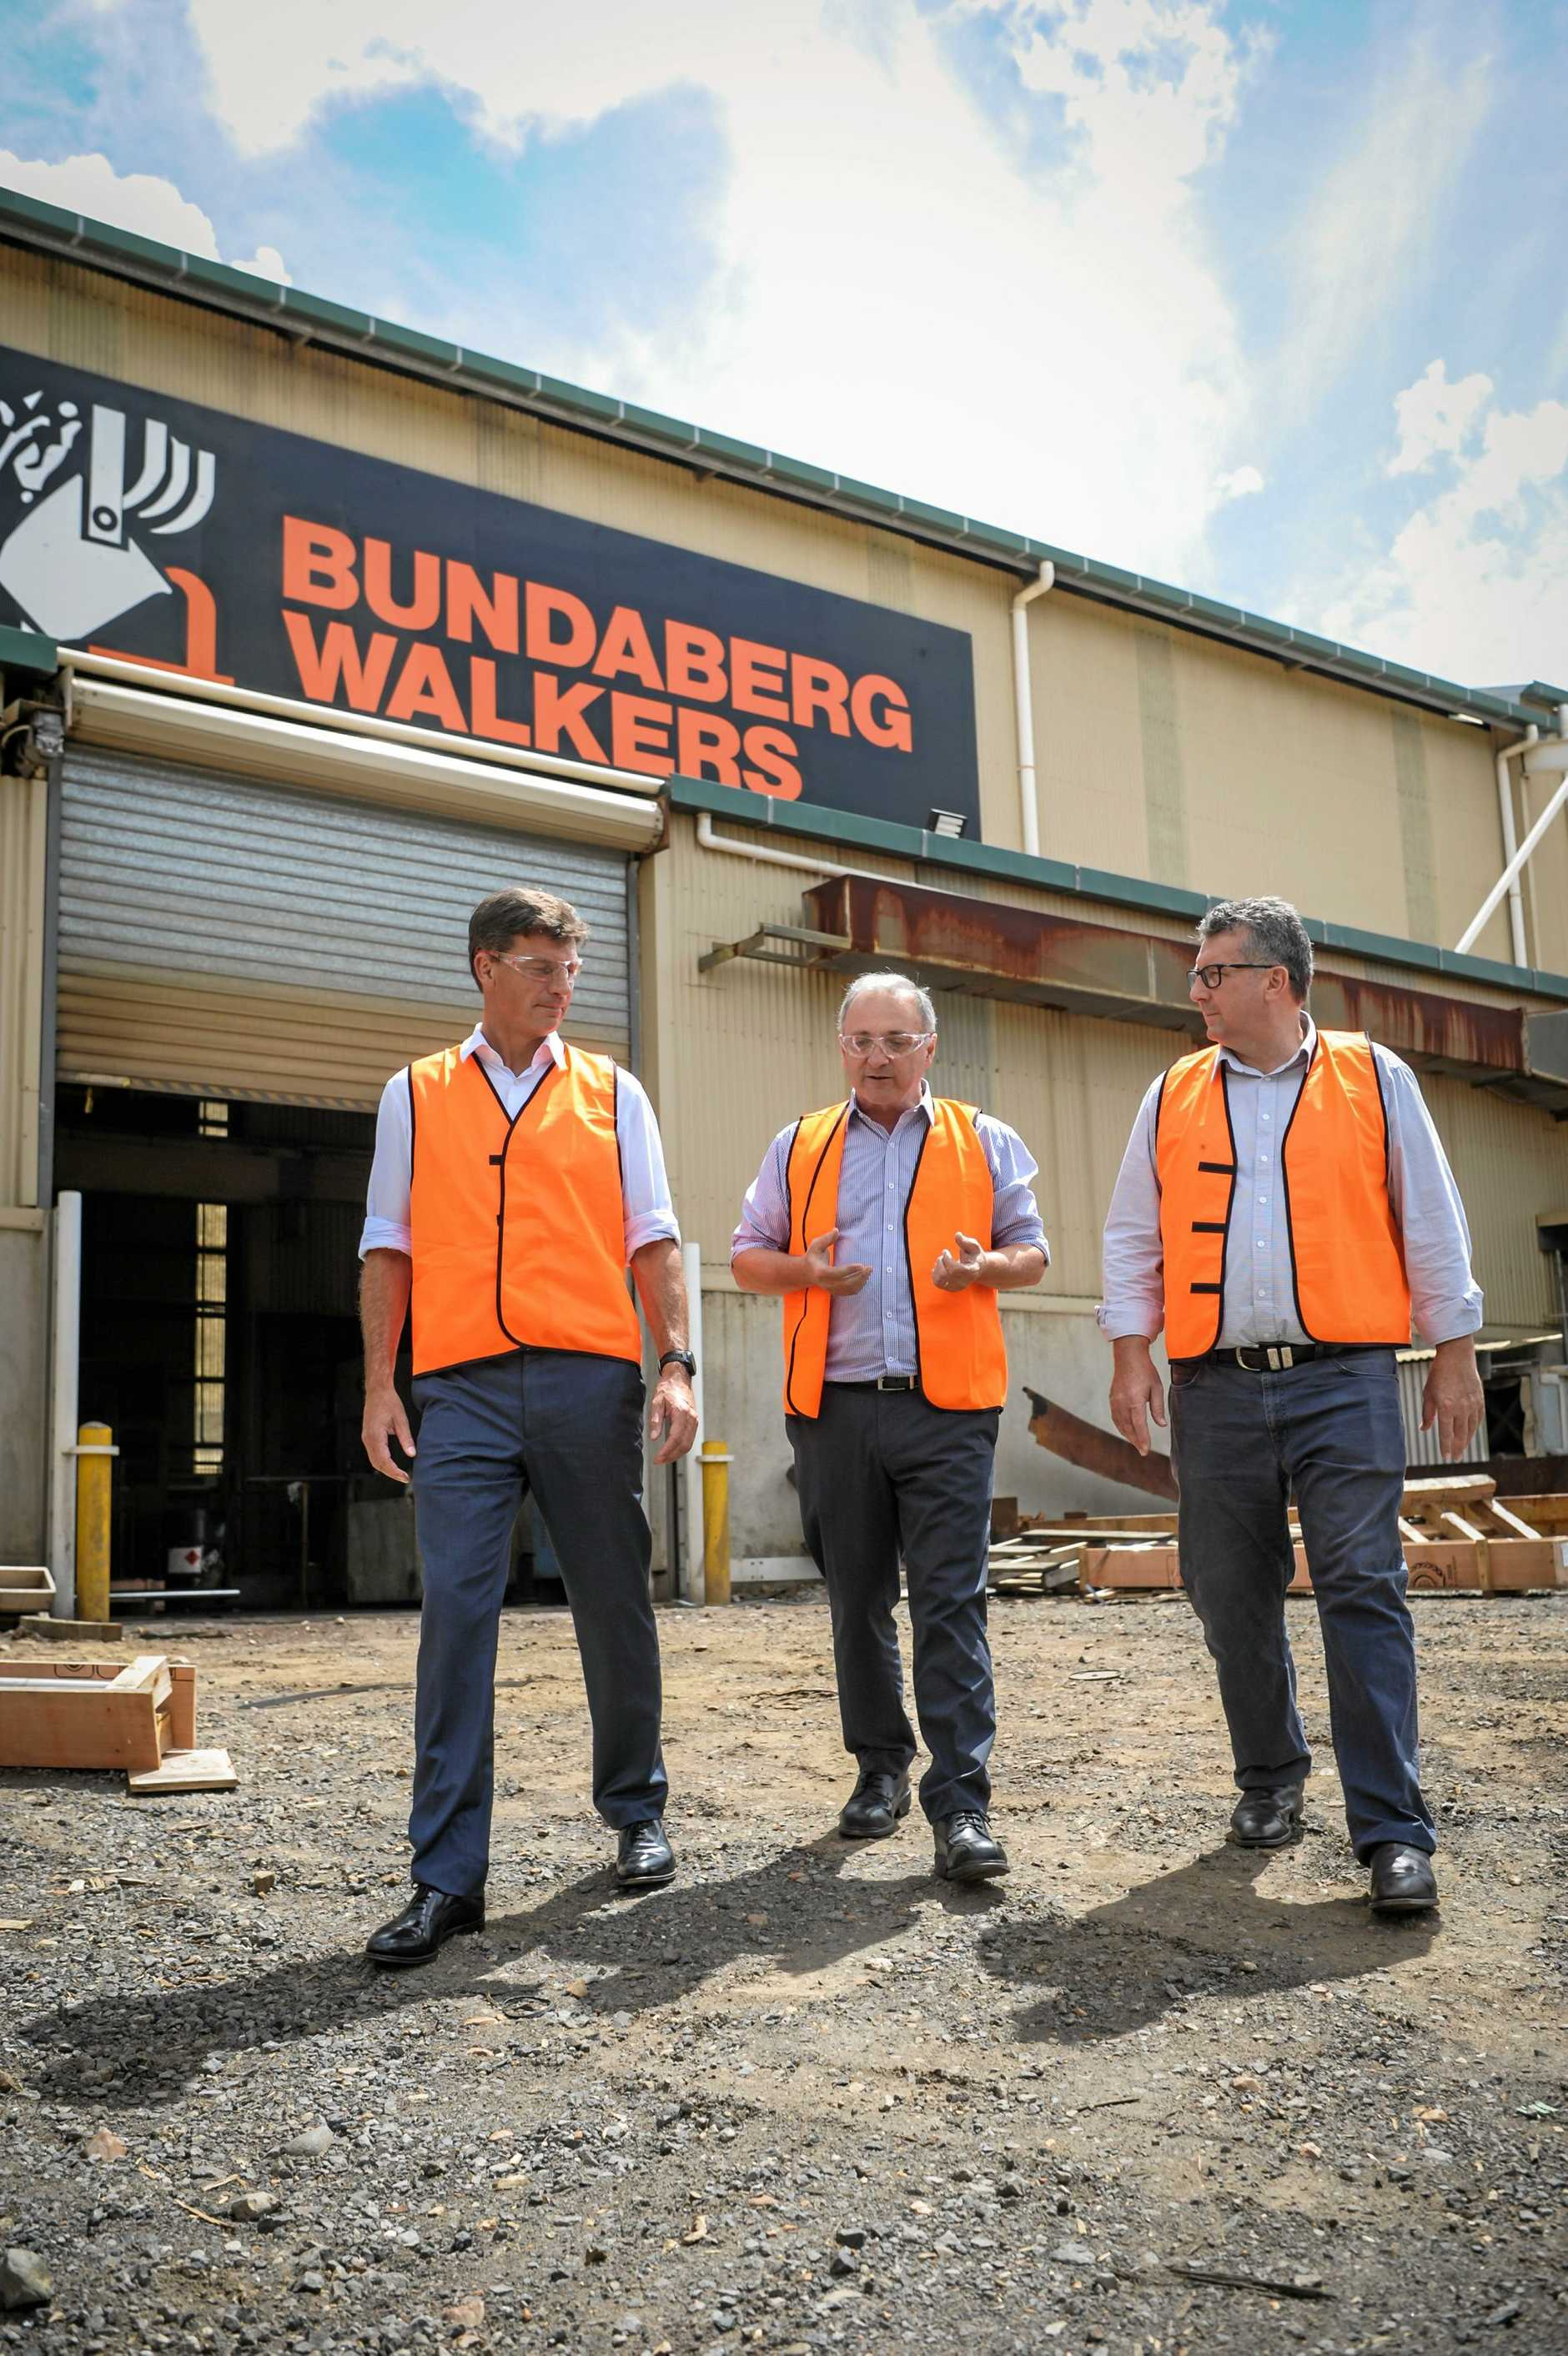 The Minister for Energy, Angus Taylor and the Federal Minister for Hinkler, Keith Pitt, visited Bundaberg Walkers to discuss the crippling cost of electricity with the General Manager, Enio Troiani.